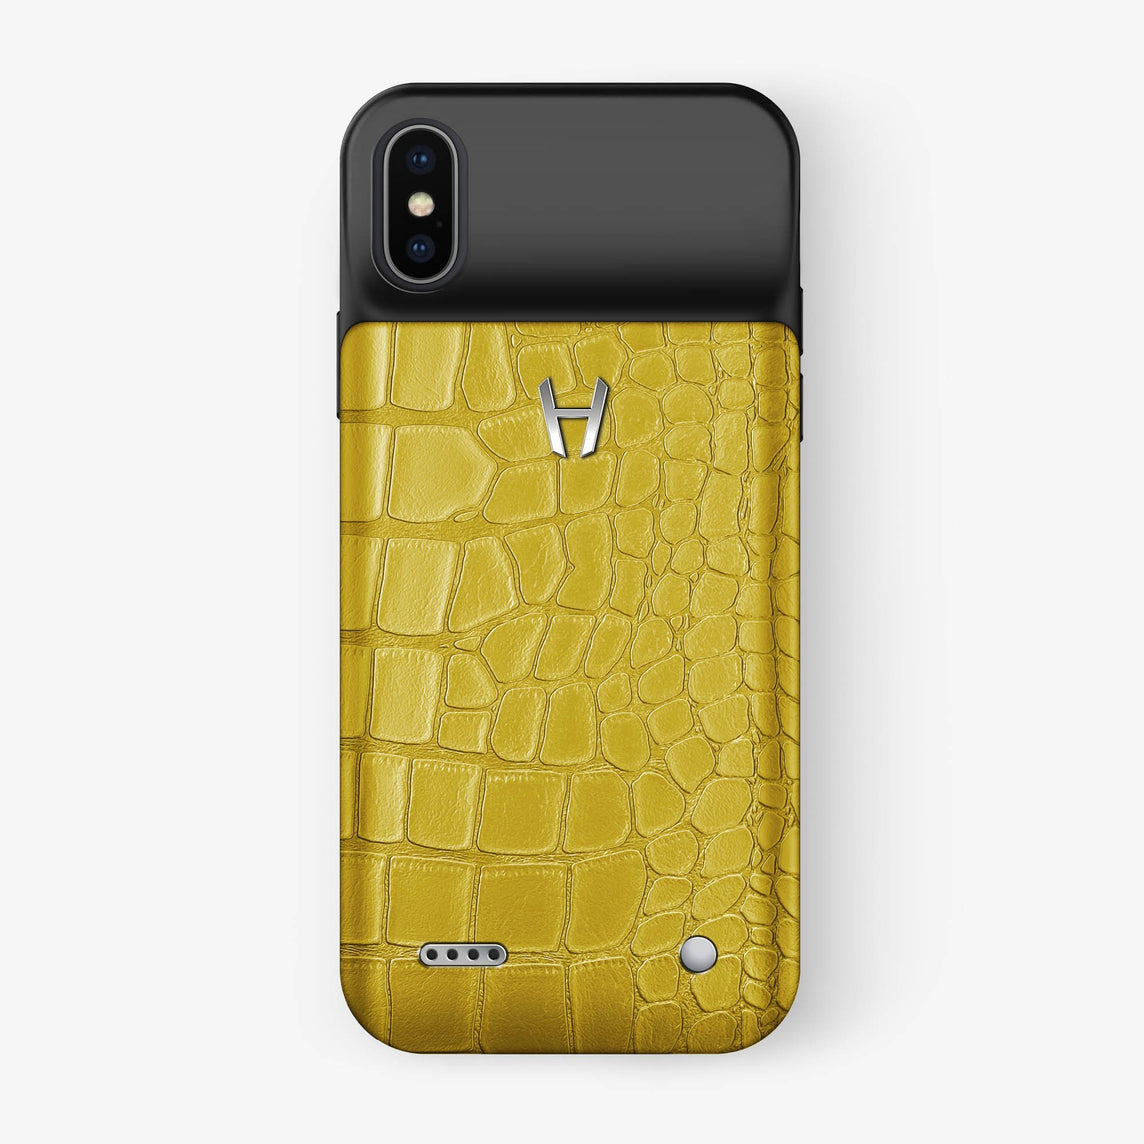 Alligator Battery Case iPhone X/Xs | Yellow - Stainless Steel without-personalization